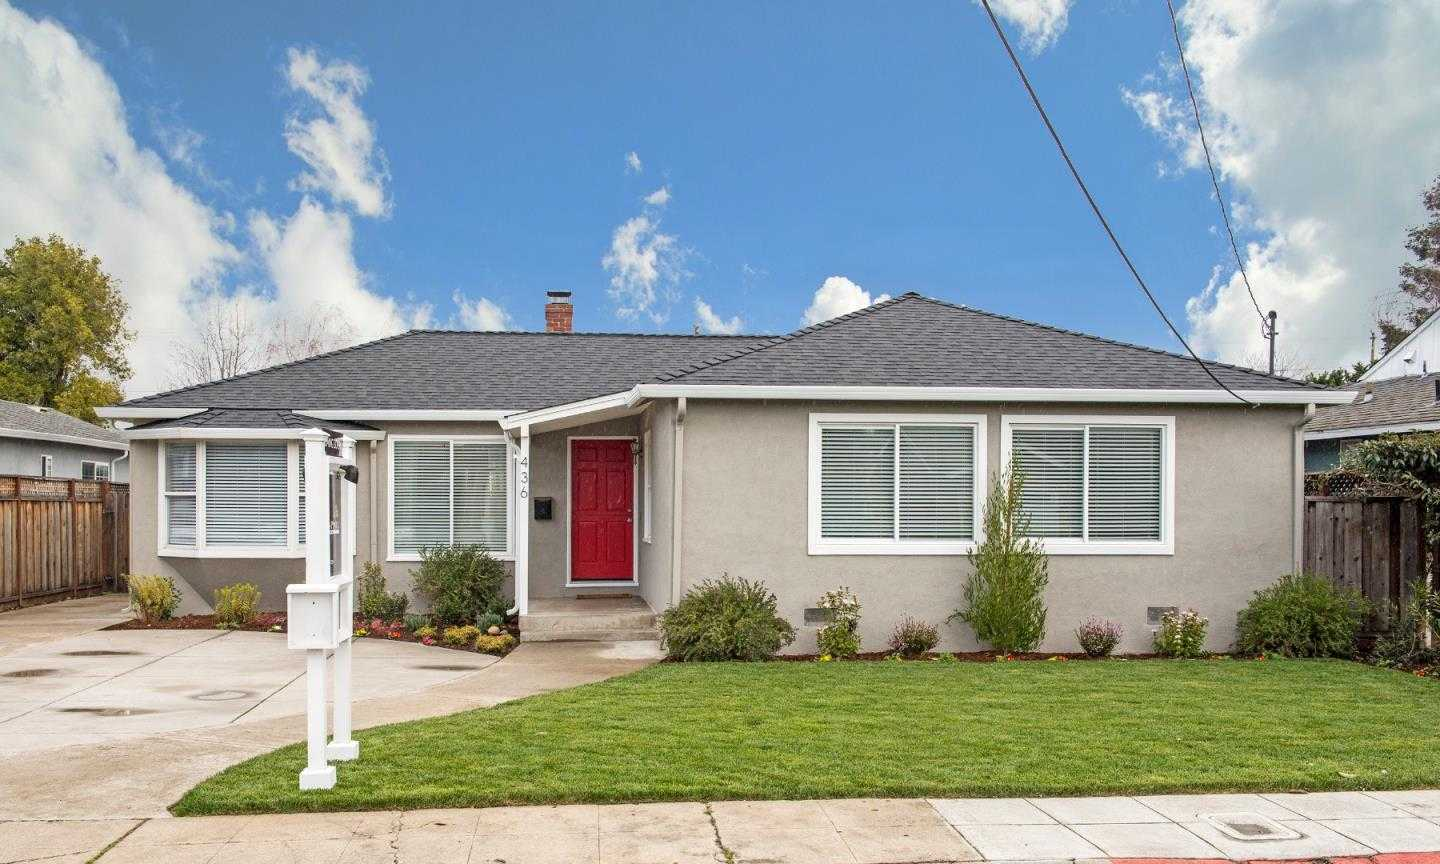 $1,070,000 - 4Br/2Ba -  for Sale in San Jose